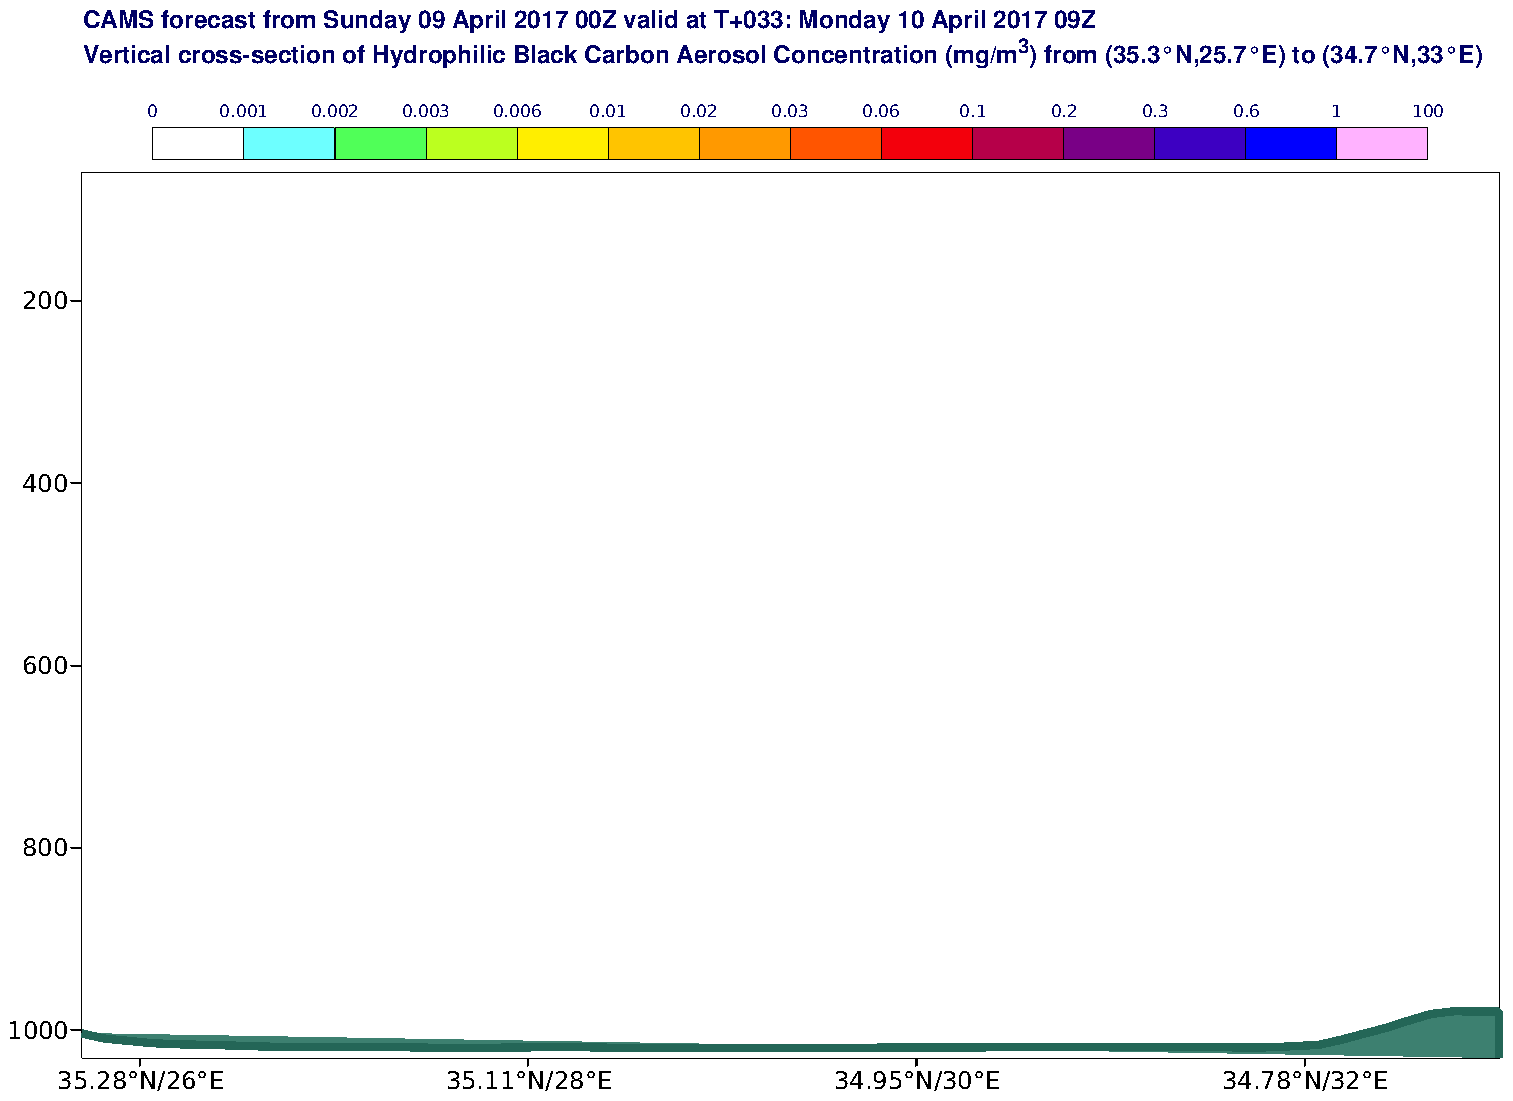 Vertical cross-section of Hydrophilic Black Carbon Aerosol Concentration (mg/m3) valid at T33 - 2017-04-10 09:00